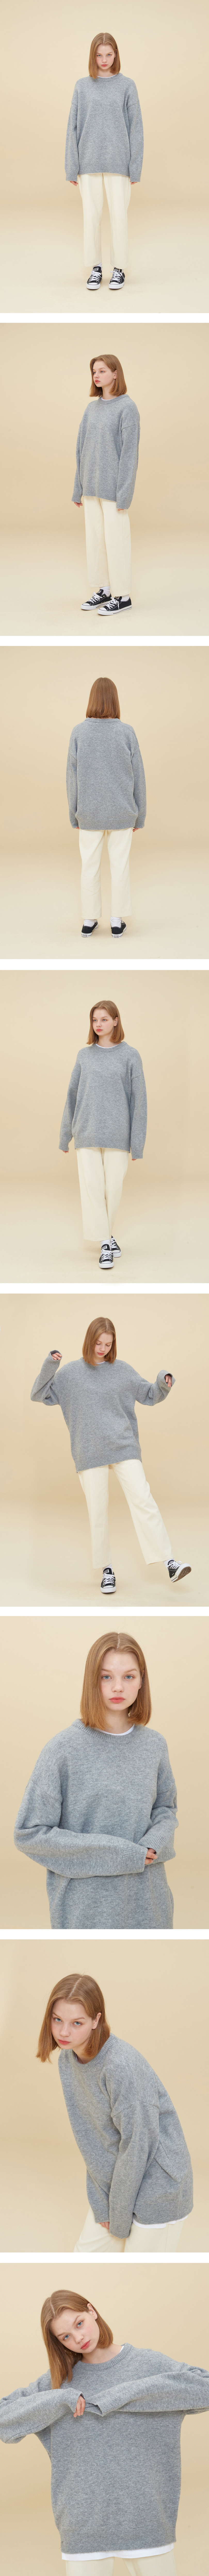 블론드나인(BLOND9) MELANGE ROUND NECK SWEATER_GRAY